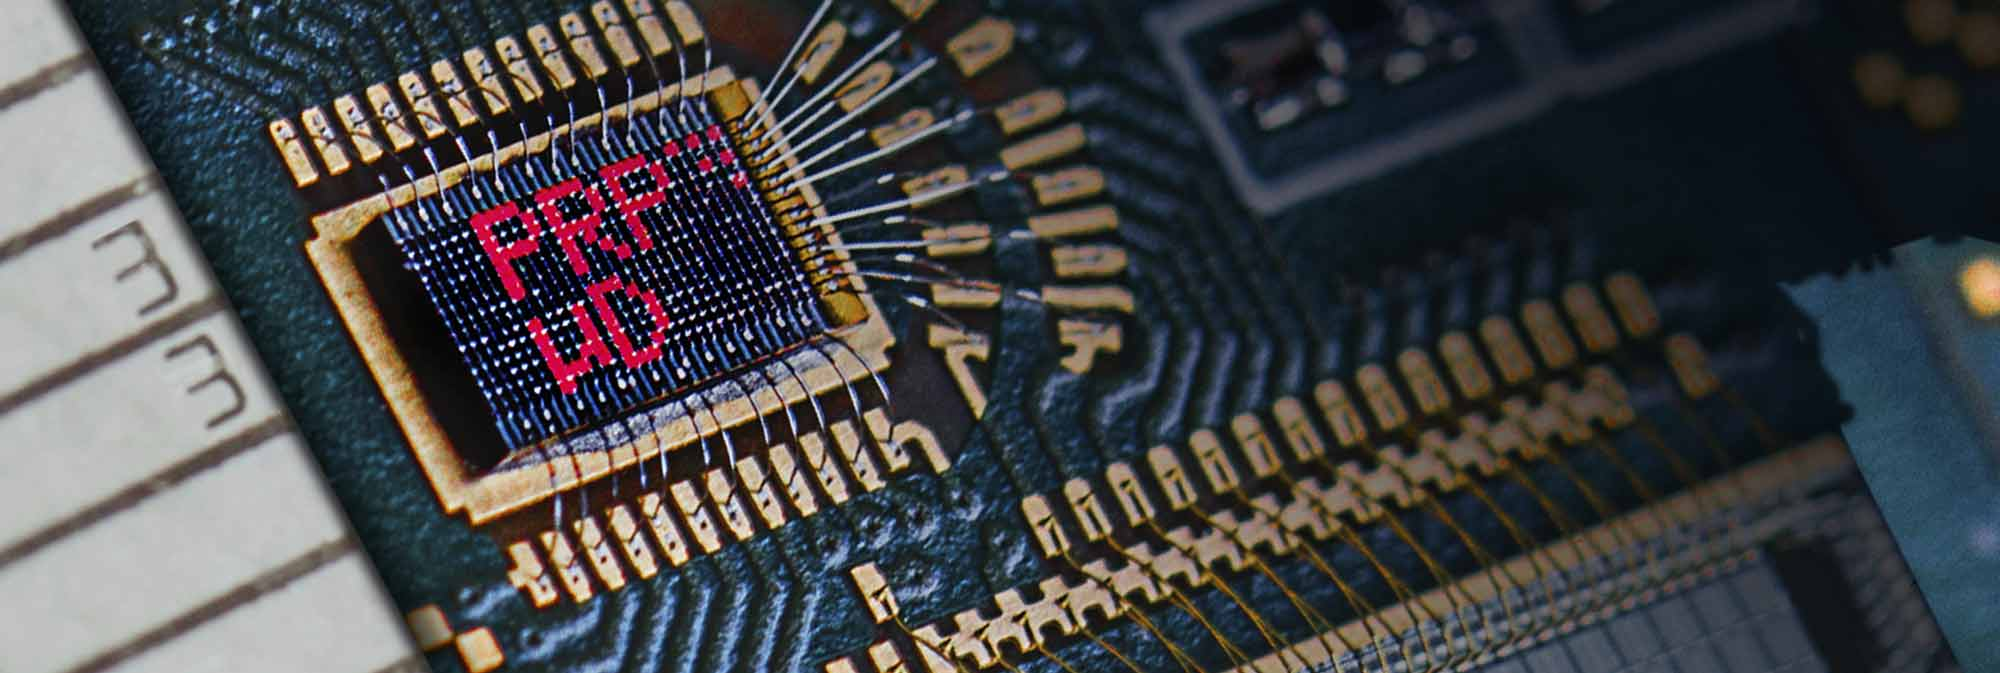 microLEDs in circuit board